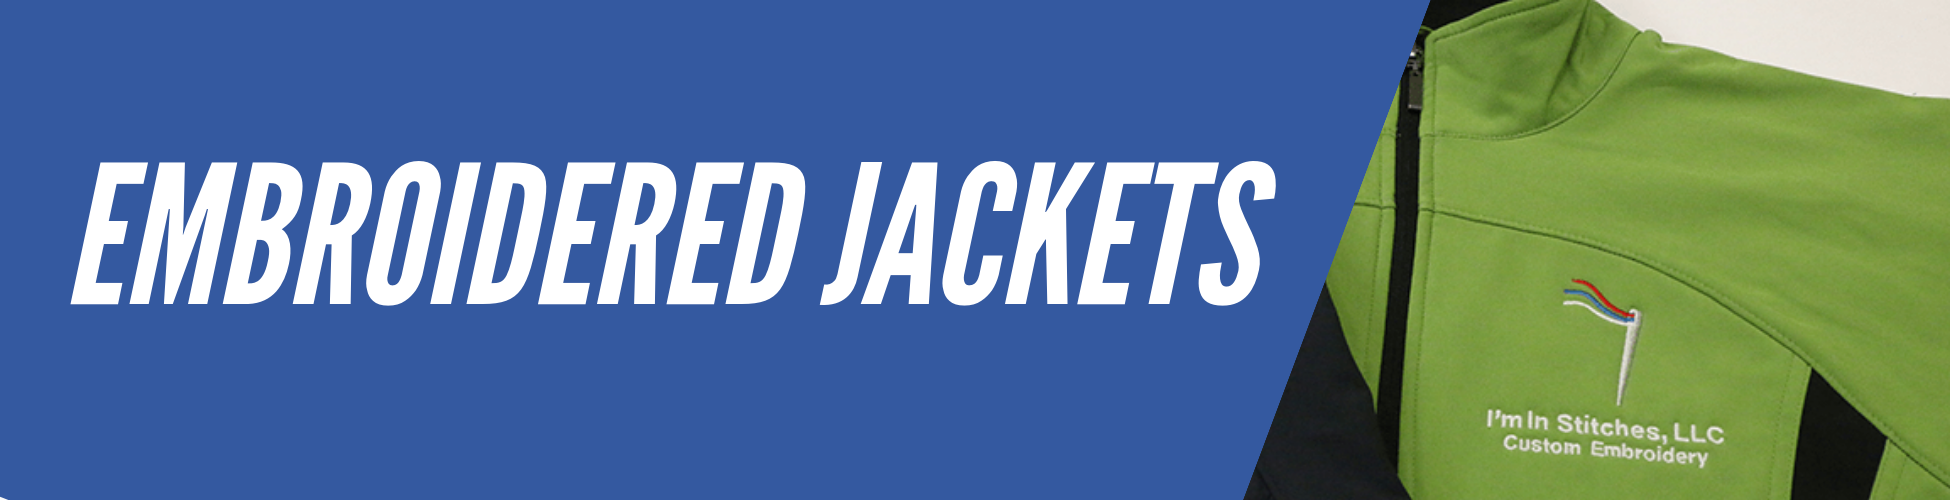 embroidered-jackets-banner-v2.png